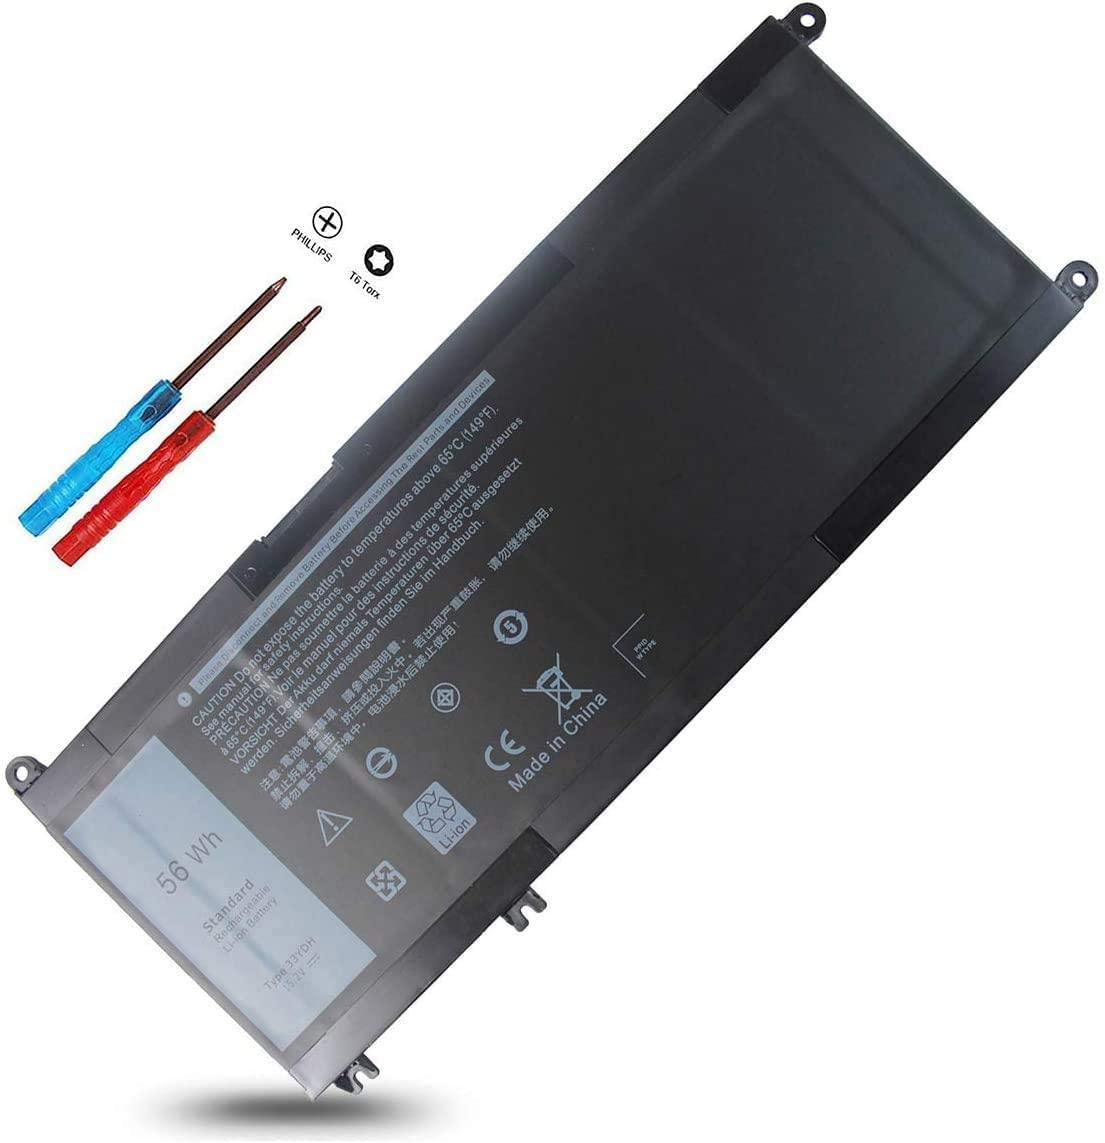 56Wh 33YDH Laptop Battery for Dell Inspiron 17 7000 7778 7779 7786 7773 15 7577,G3 3579 3779 G5 5587 G7 7588,Latitude 13 3380 14 3490 15 3590 3580 PVHT1 P30E 99NF2 7573 2-in-1 81PF3 081PF3 P30E001